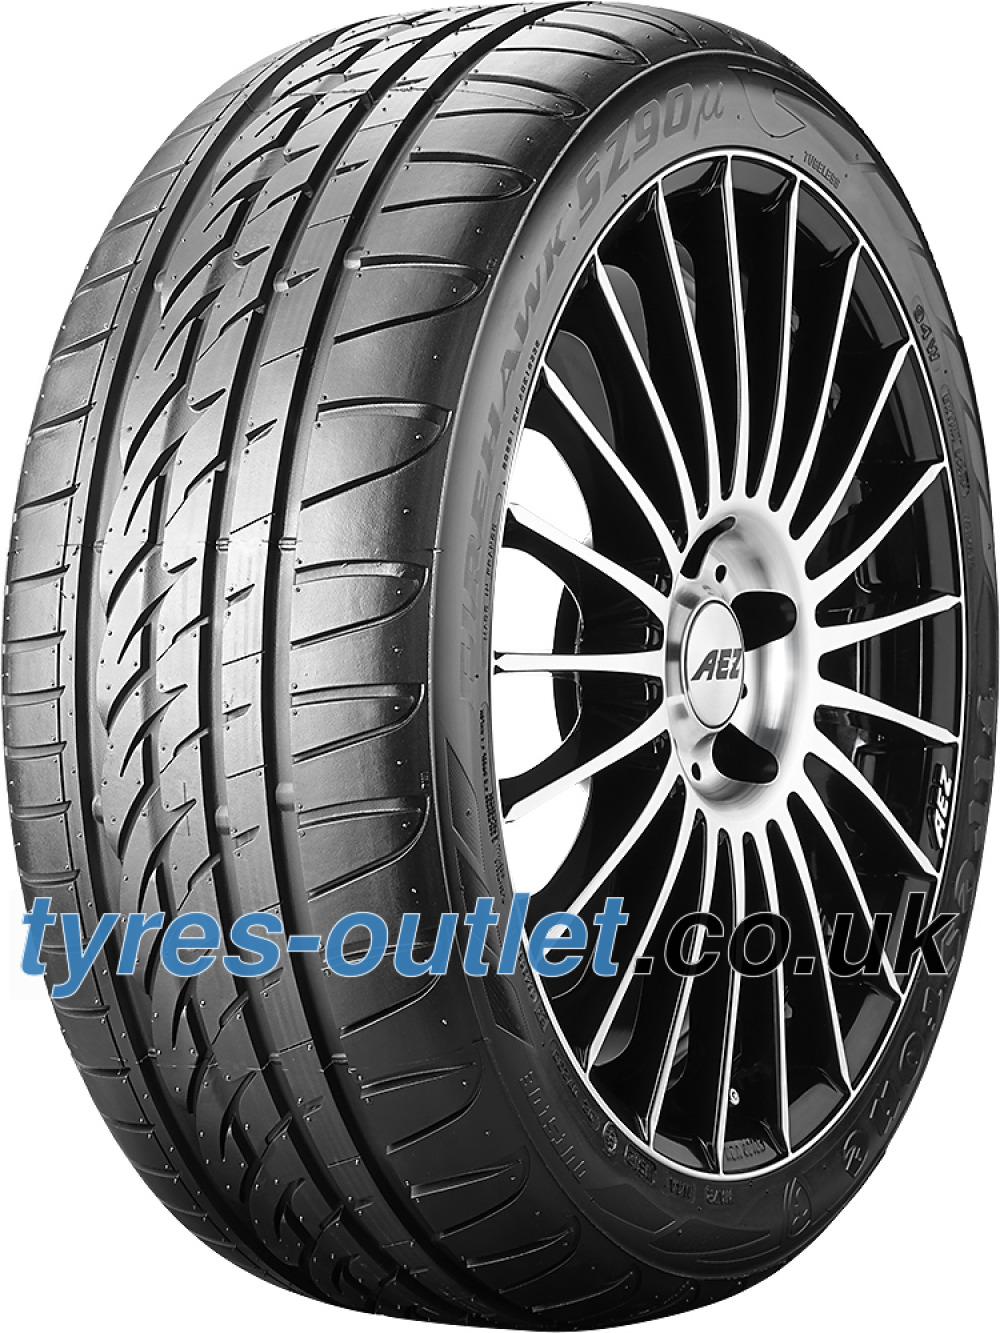 Firestone Firehawk SZ 90 ( 205/40 R17 84W XL with rim protection (MFS) )